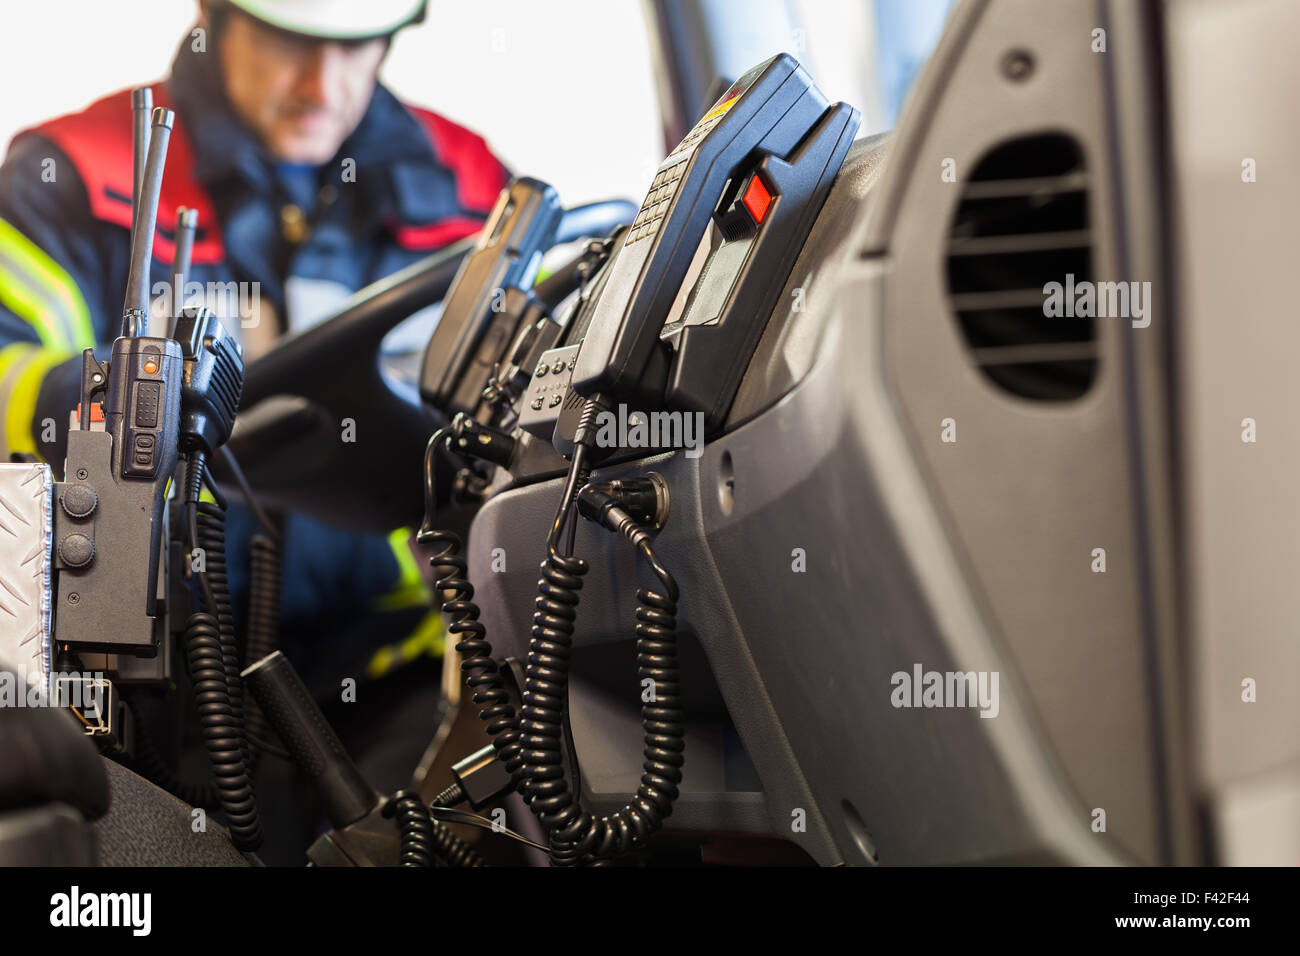 Firefighter with radio devices used vehicle - Stock Image